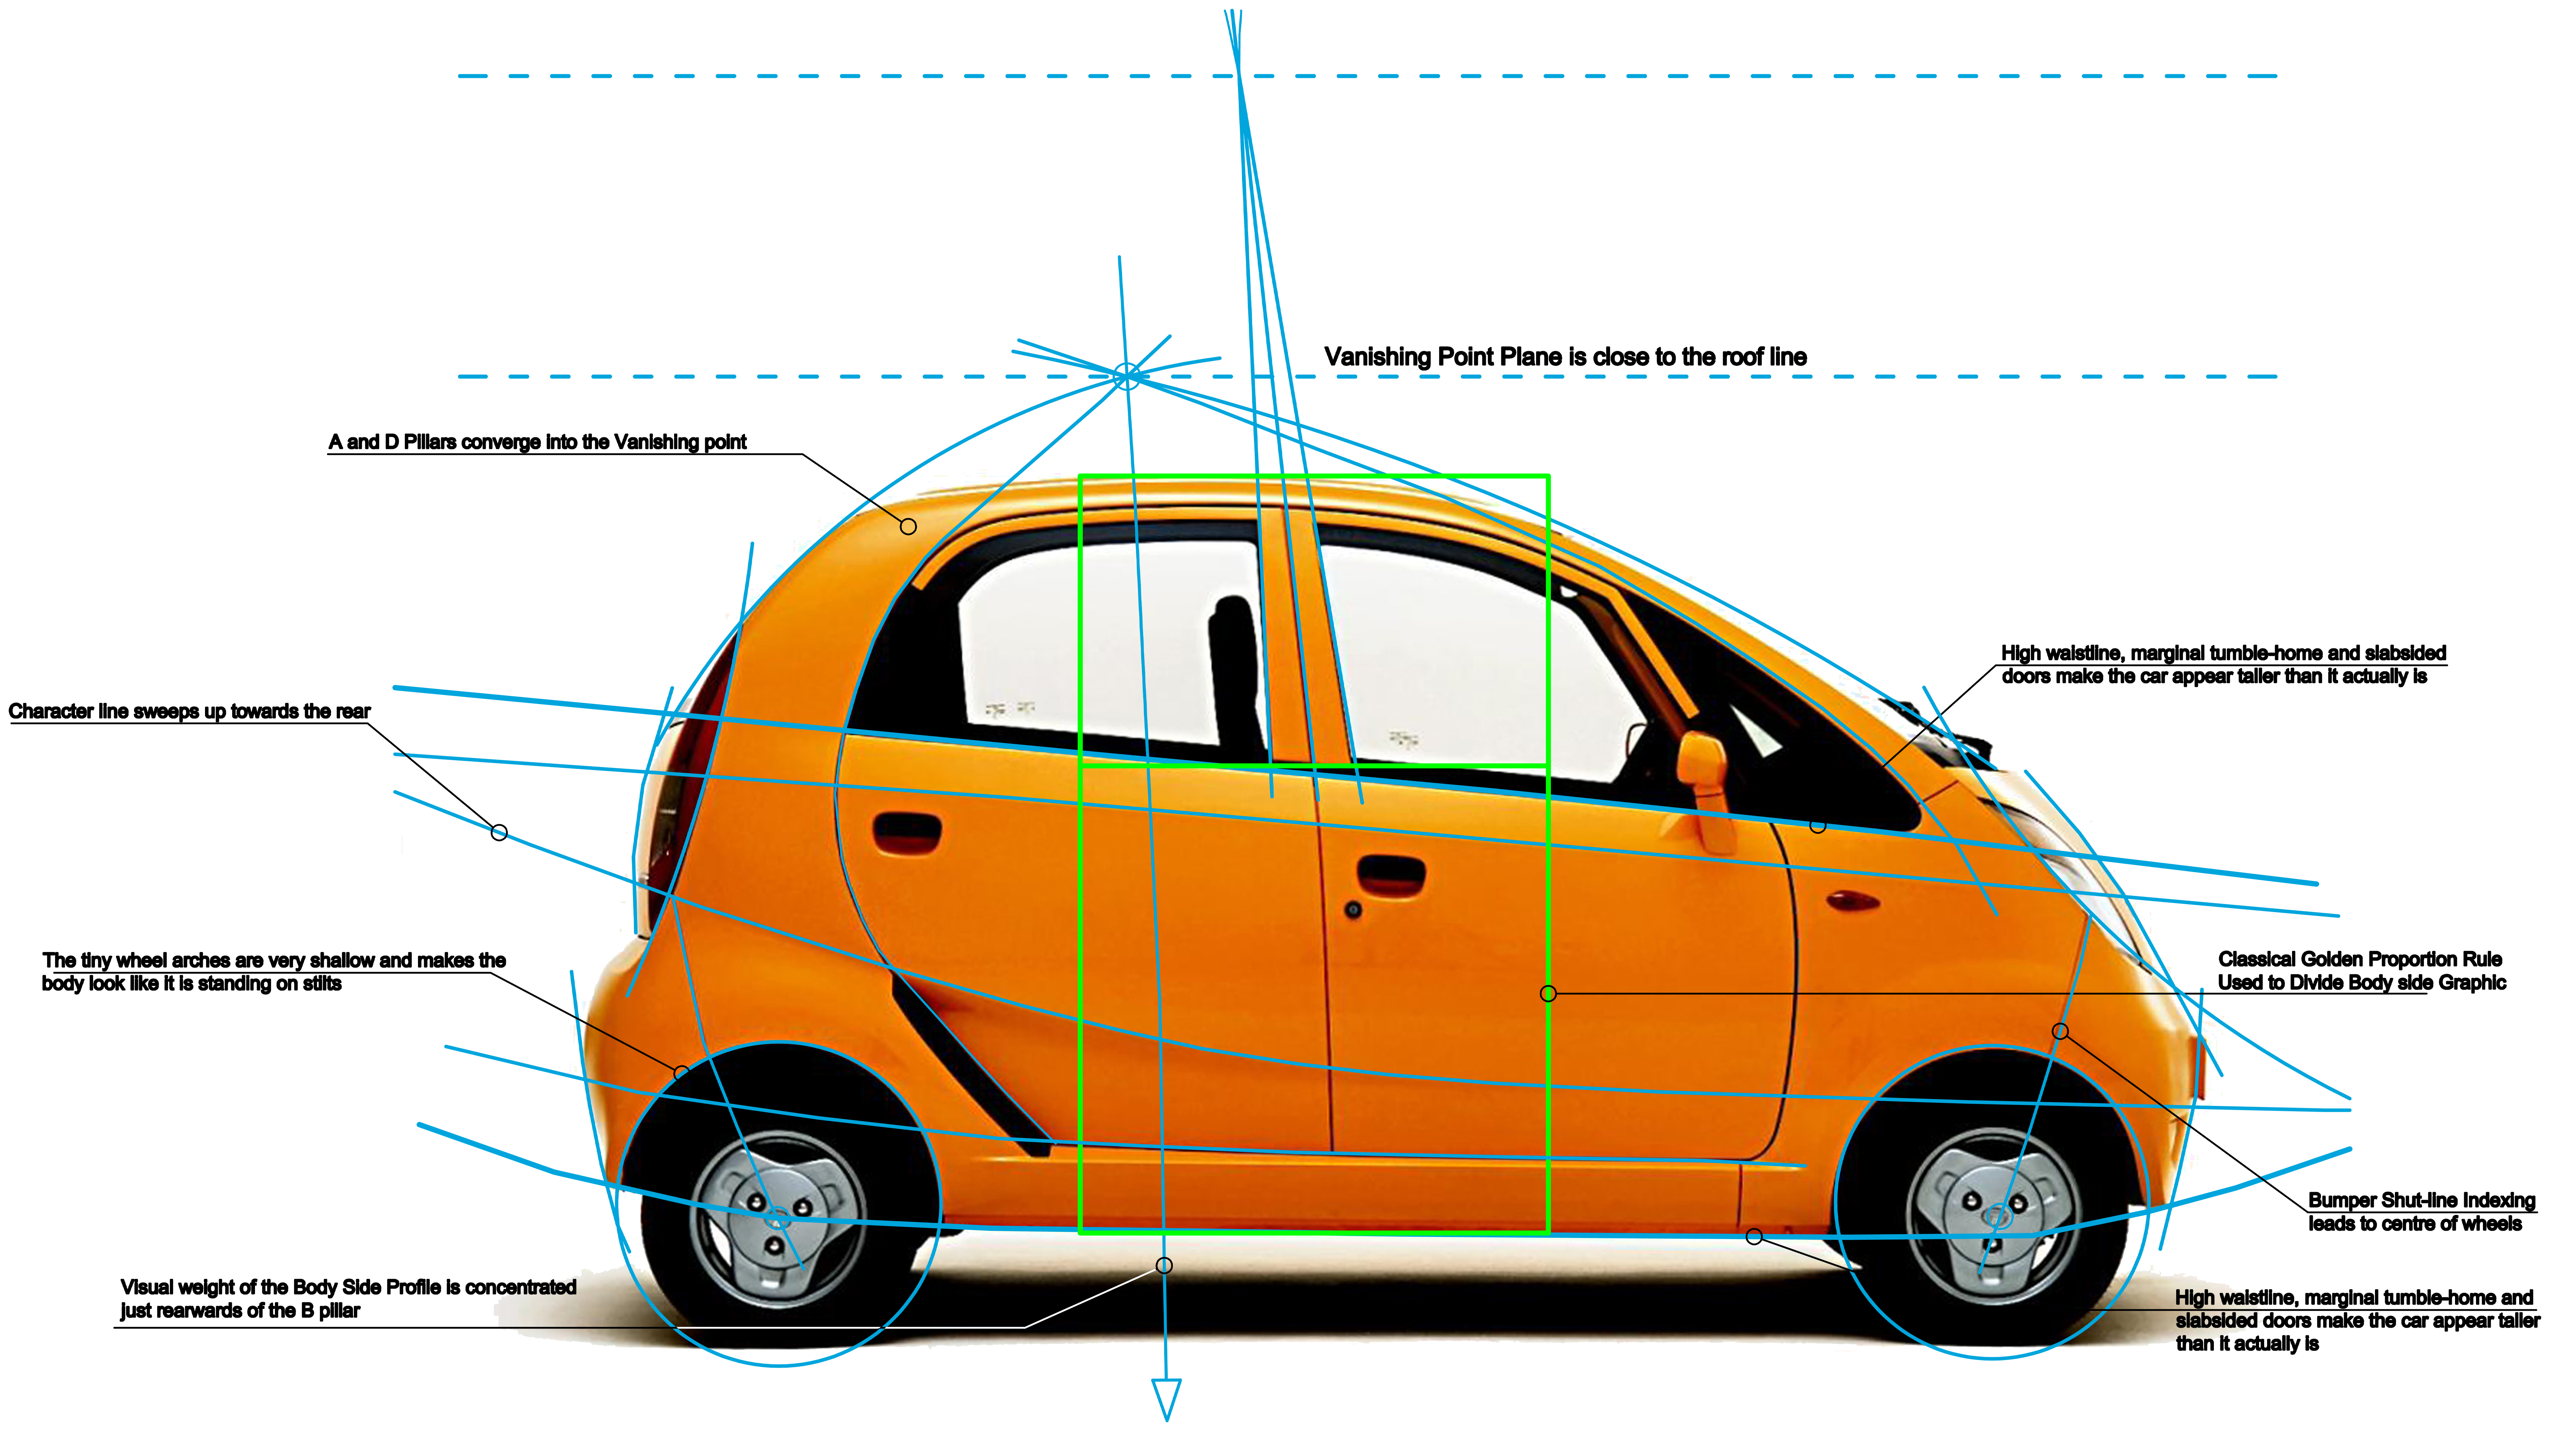 etop analysis tata nano car Huffpost news news us news world news expert analysis and commentary to make sense of today's biggest stories tata nano: $3,000 car.